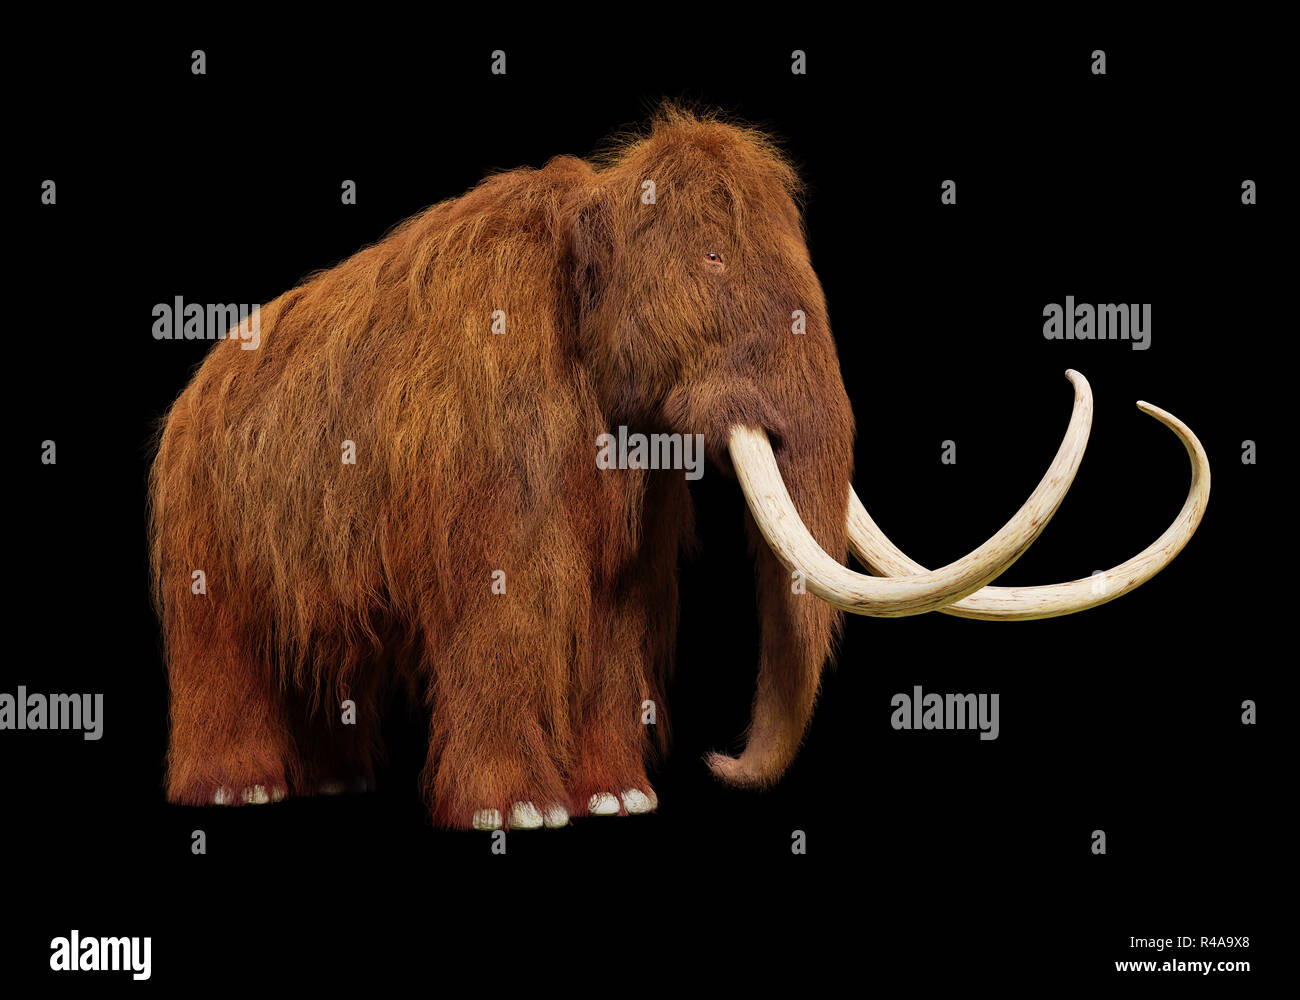 woolly mammoth, prehistoric mammal isolated on black background - Stock Image